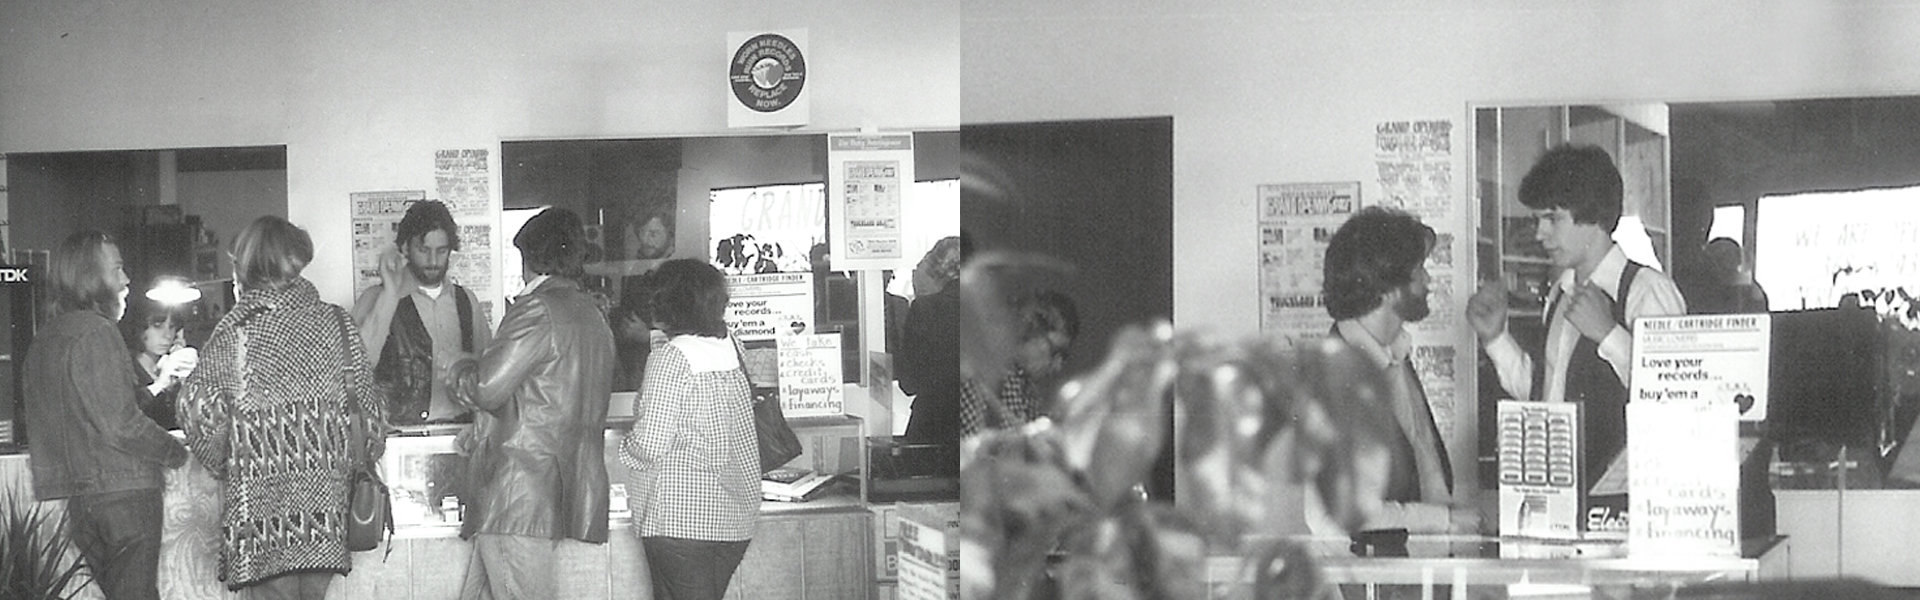 Left to right: Bob at the counter helping customers. Bob and Ron chatting about their first day.